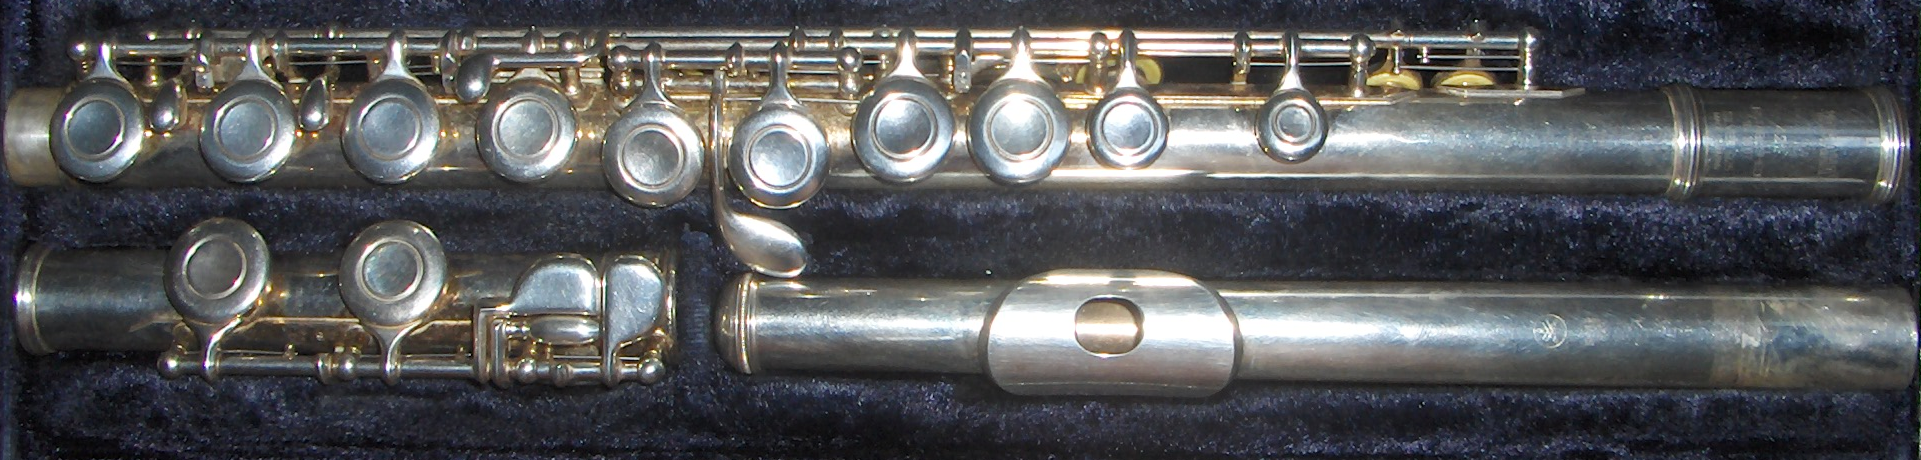 Disassembled Flute.png